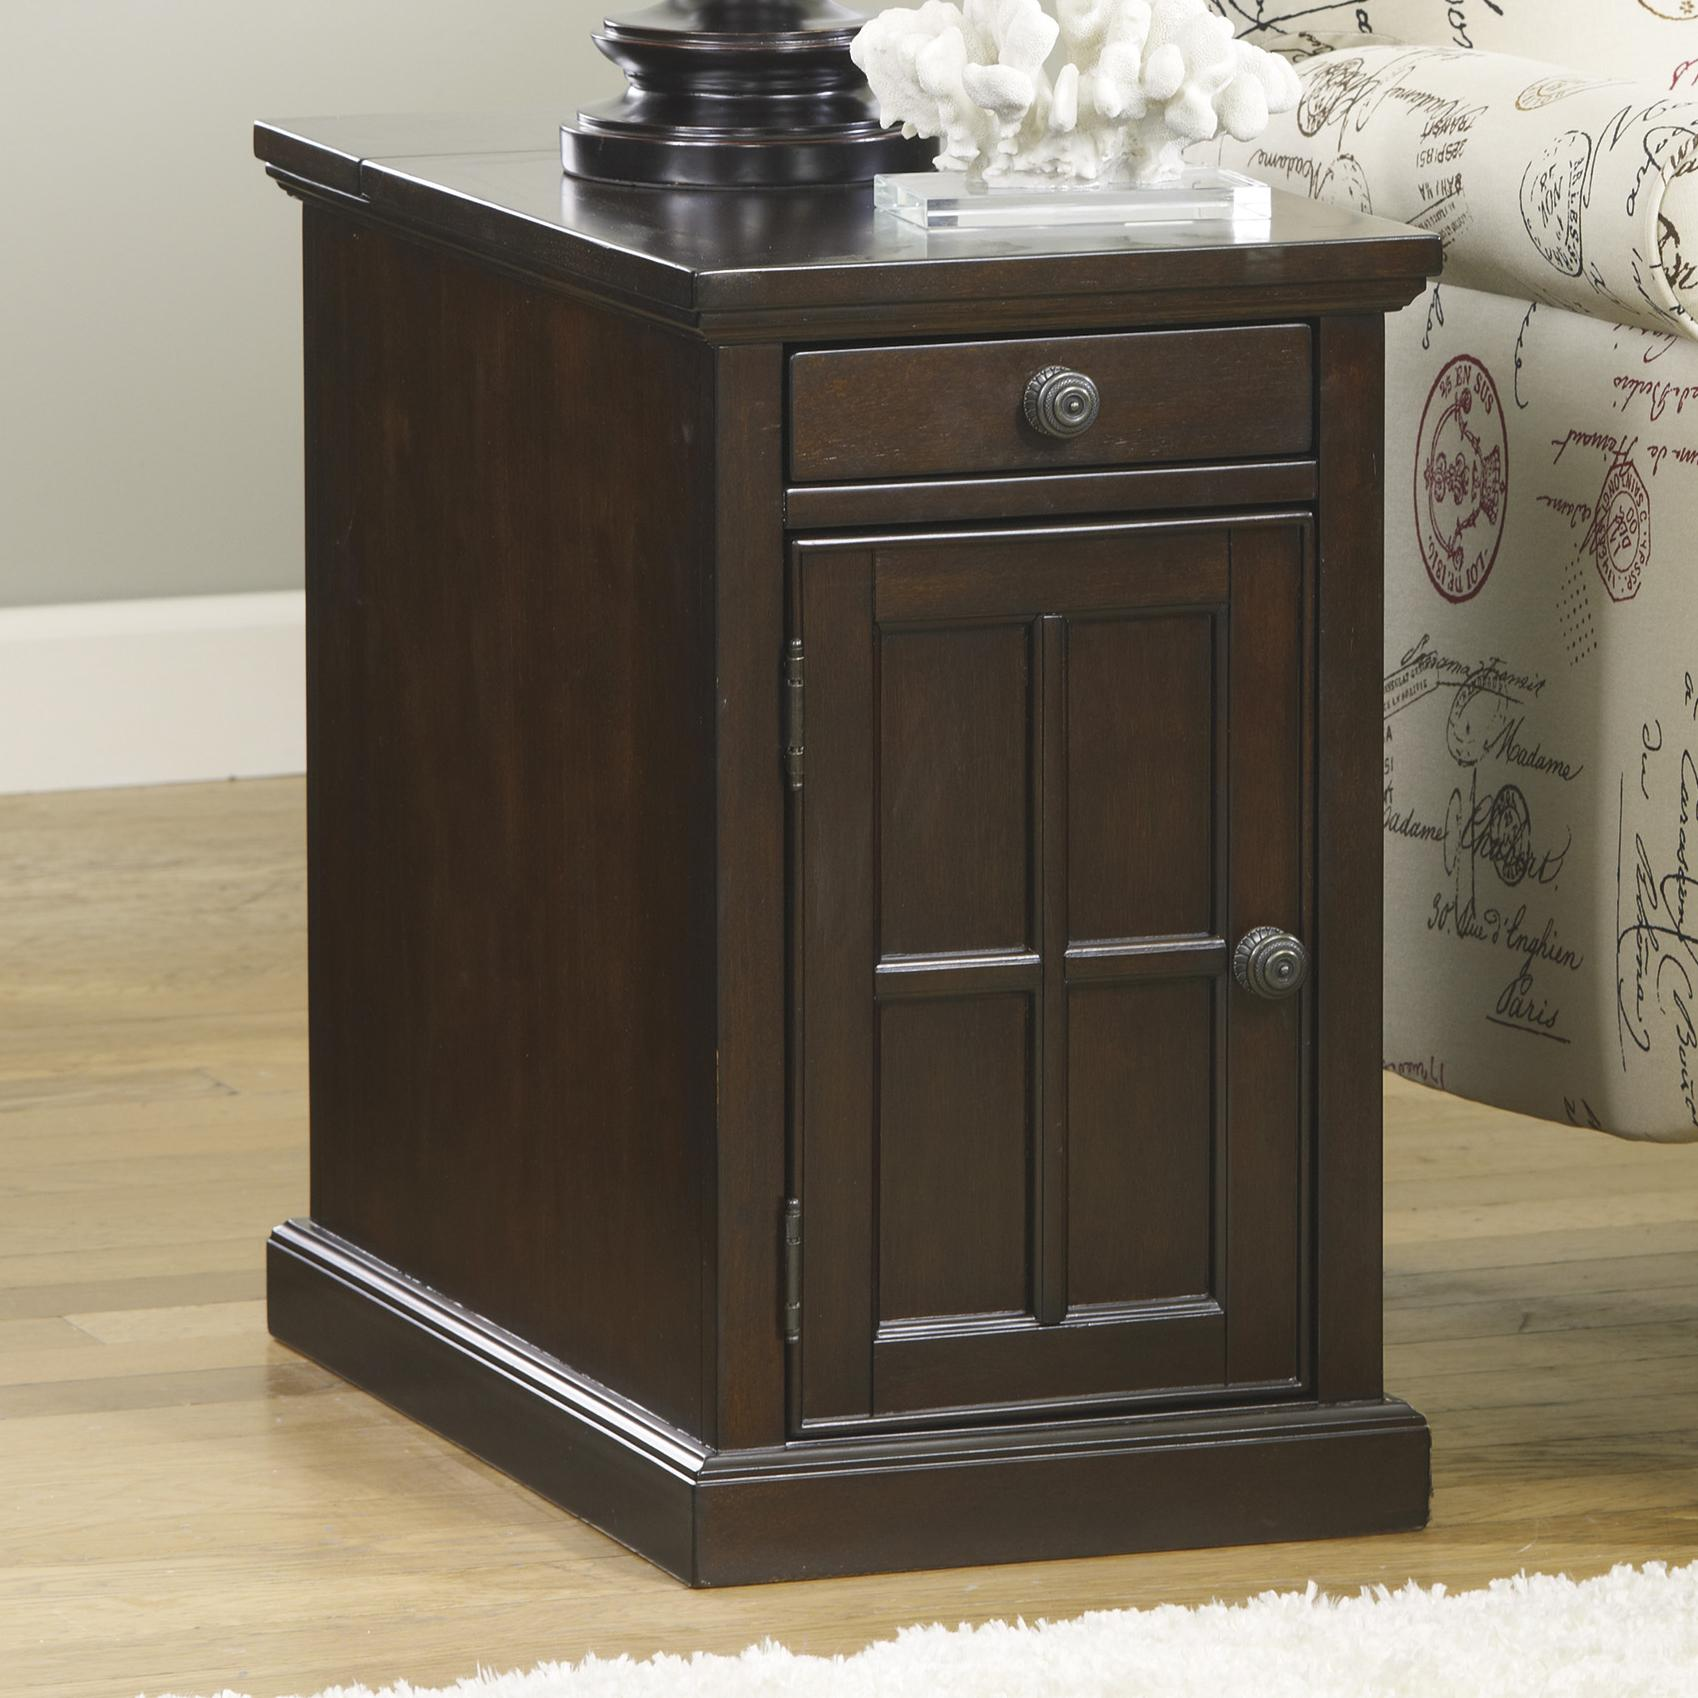 Laflorn Chair Side End Table by Signature Design by Ashley at Northeast Factory Direct